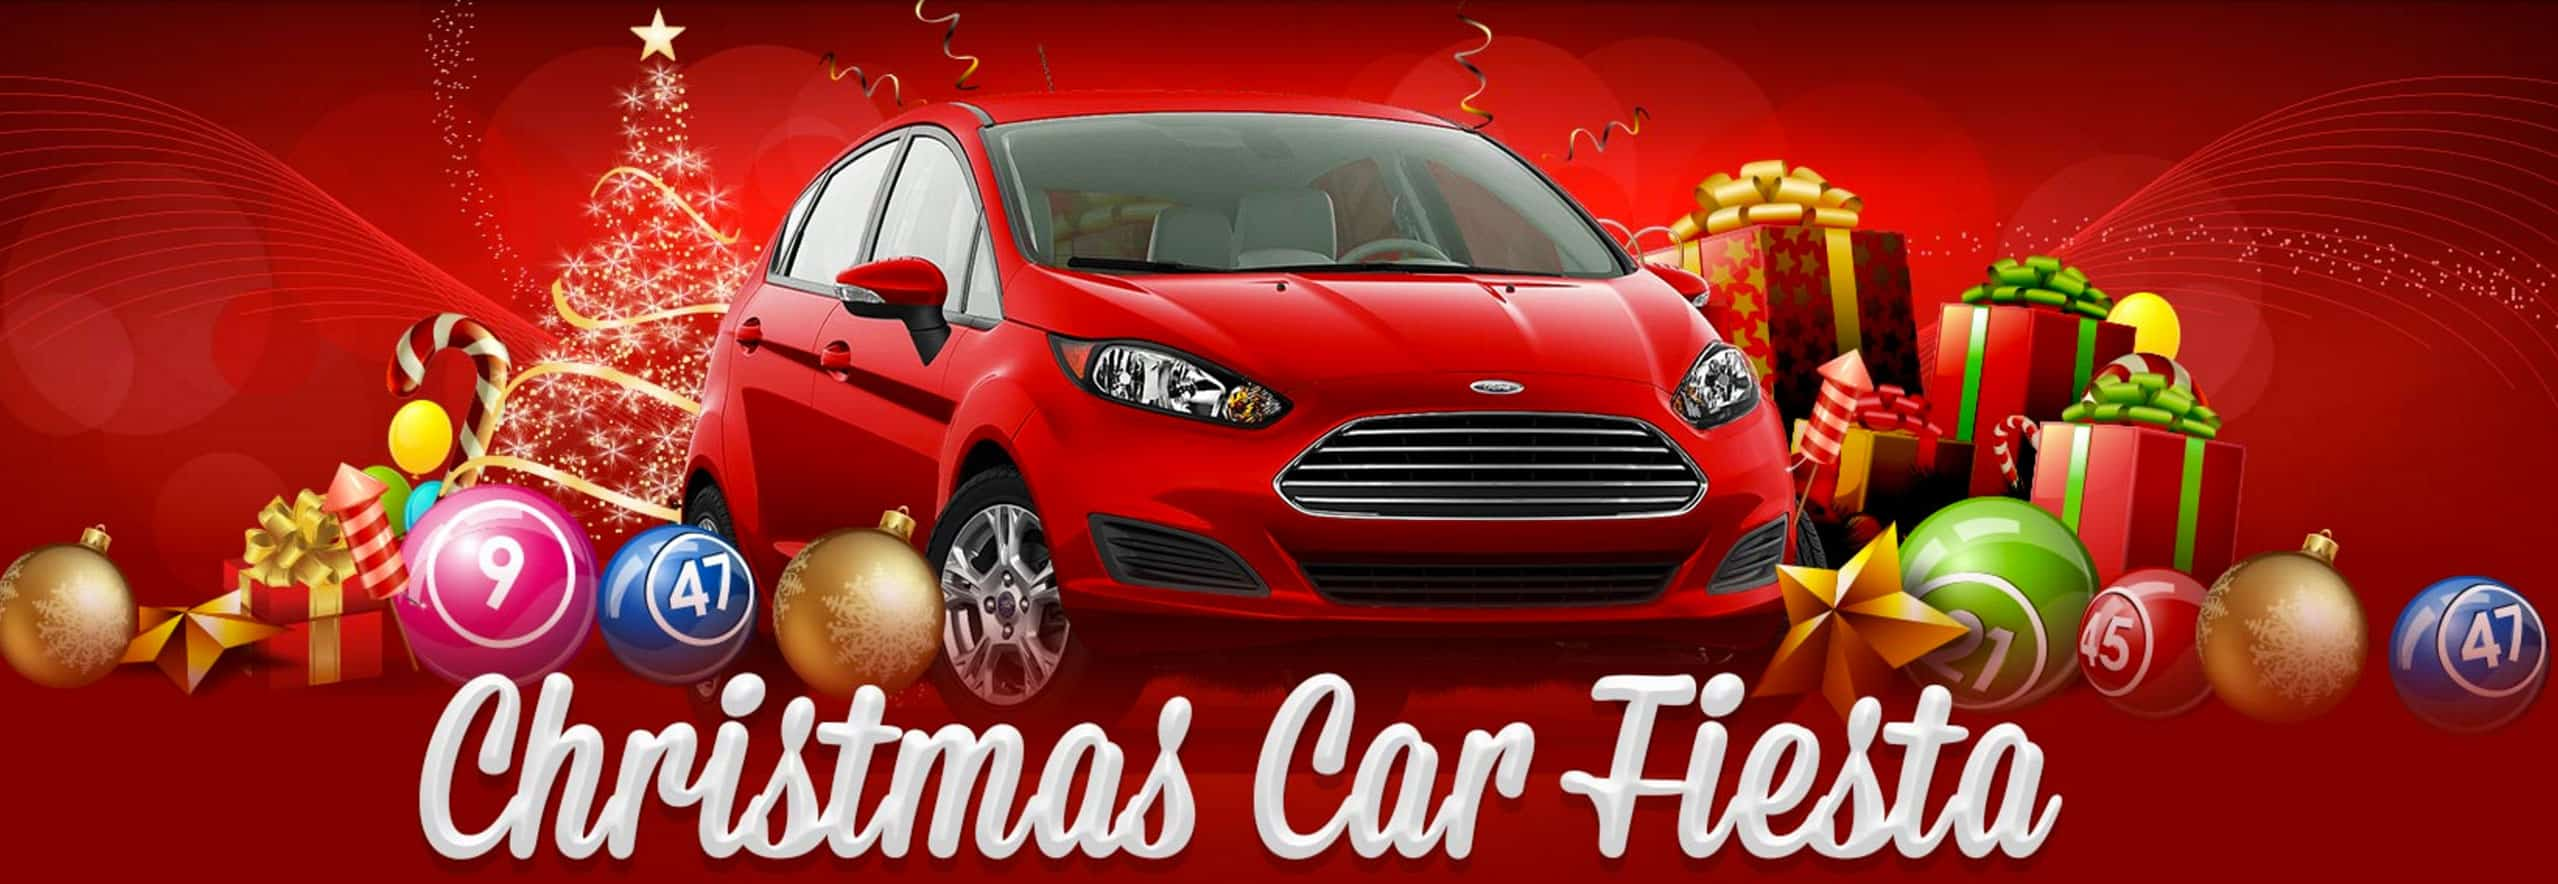 Vic's Bingo - Christmas Car Fiesta